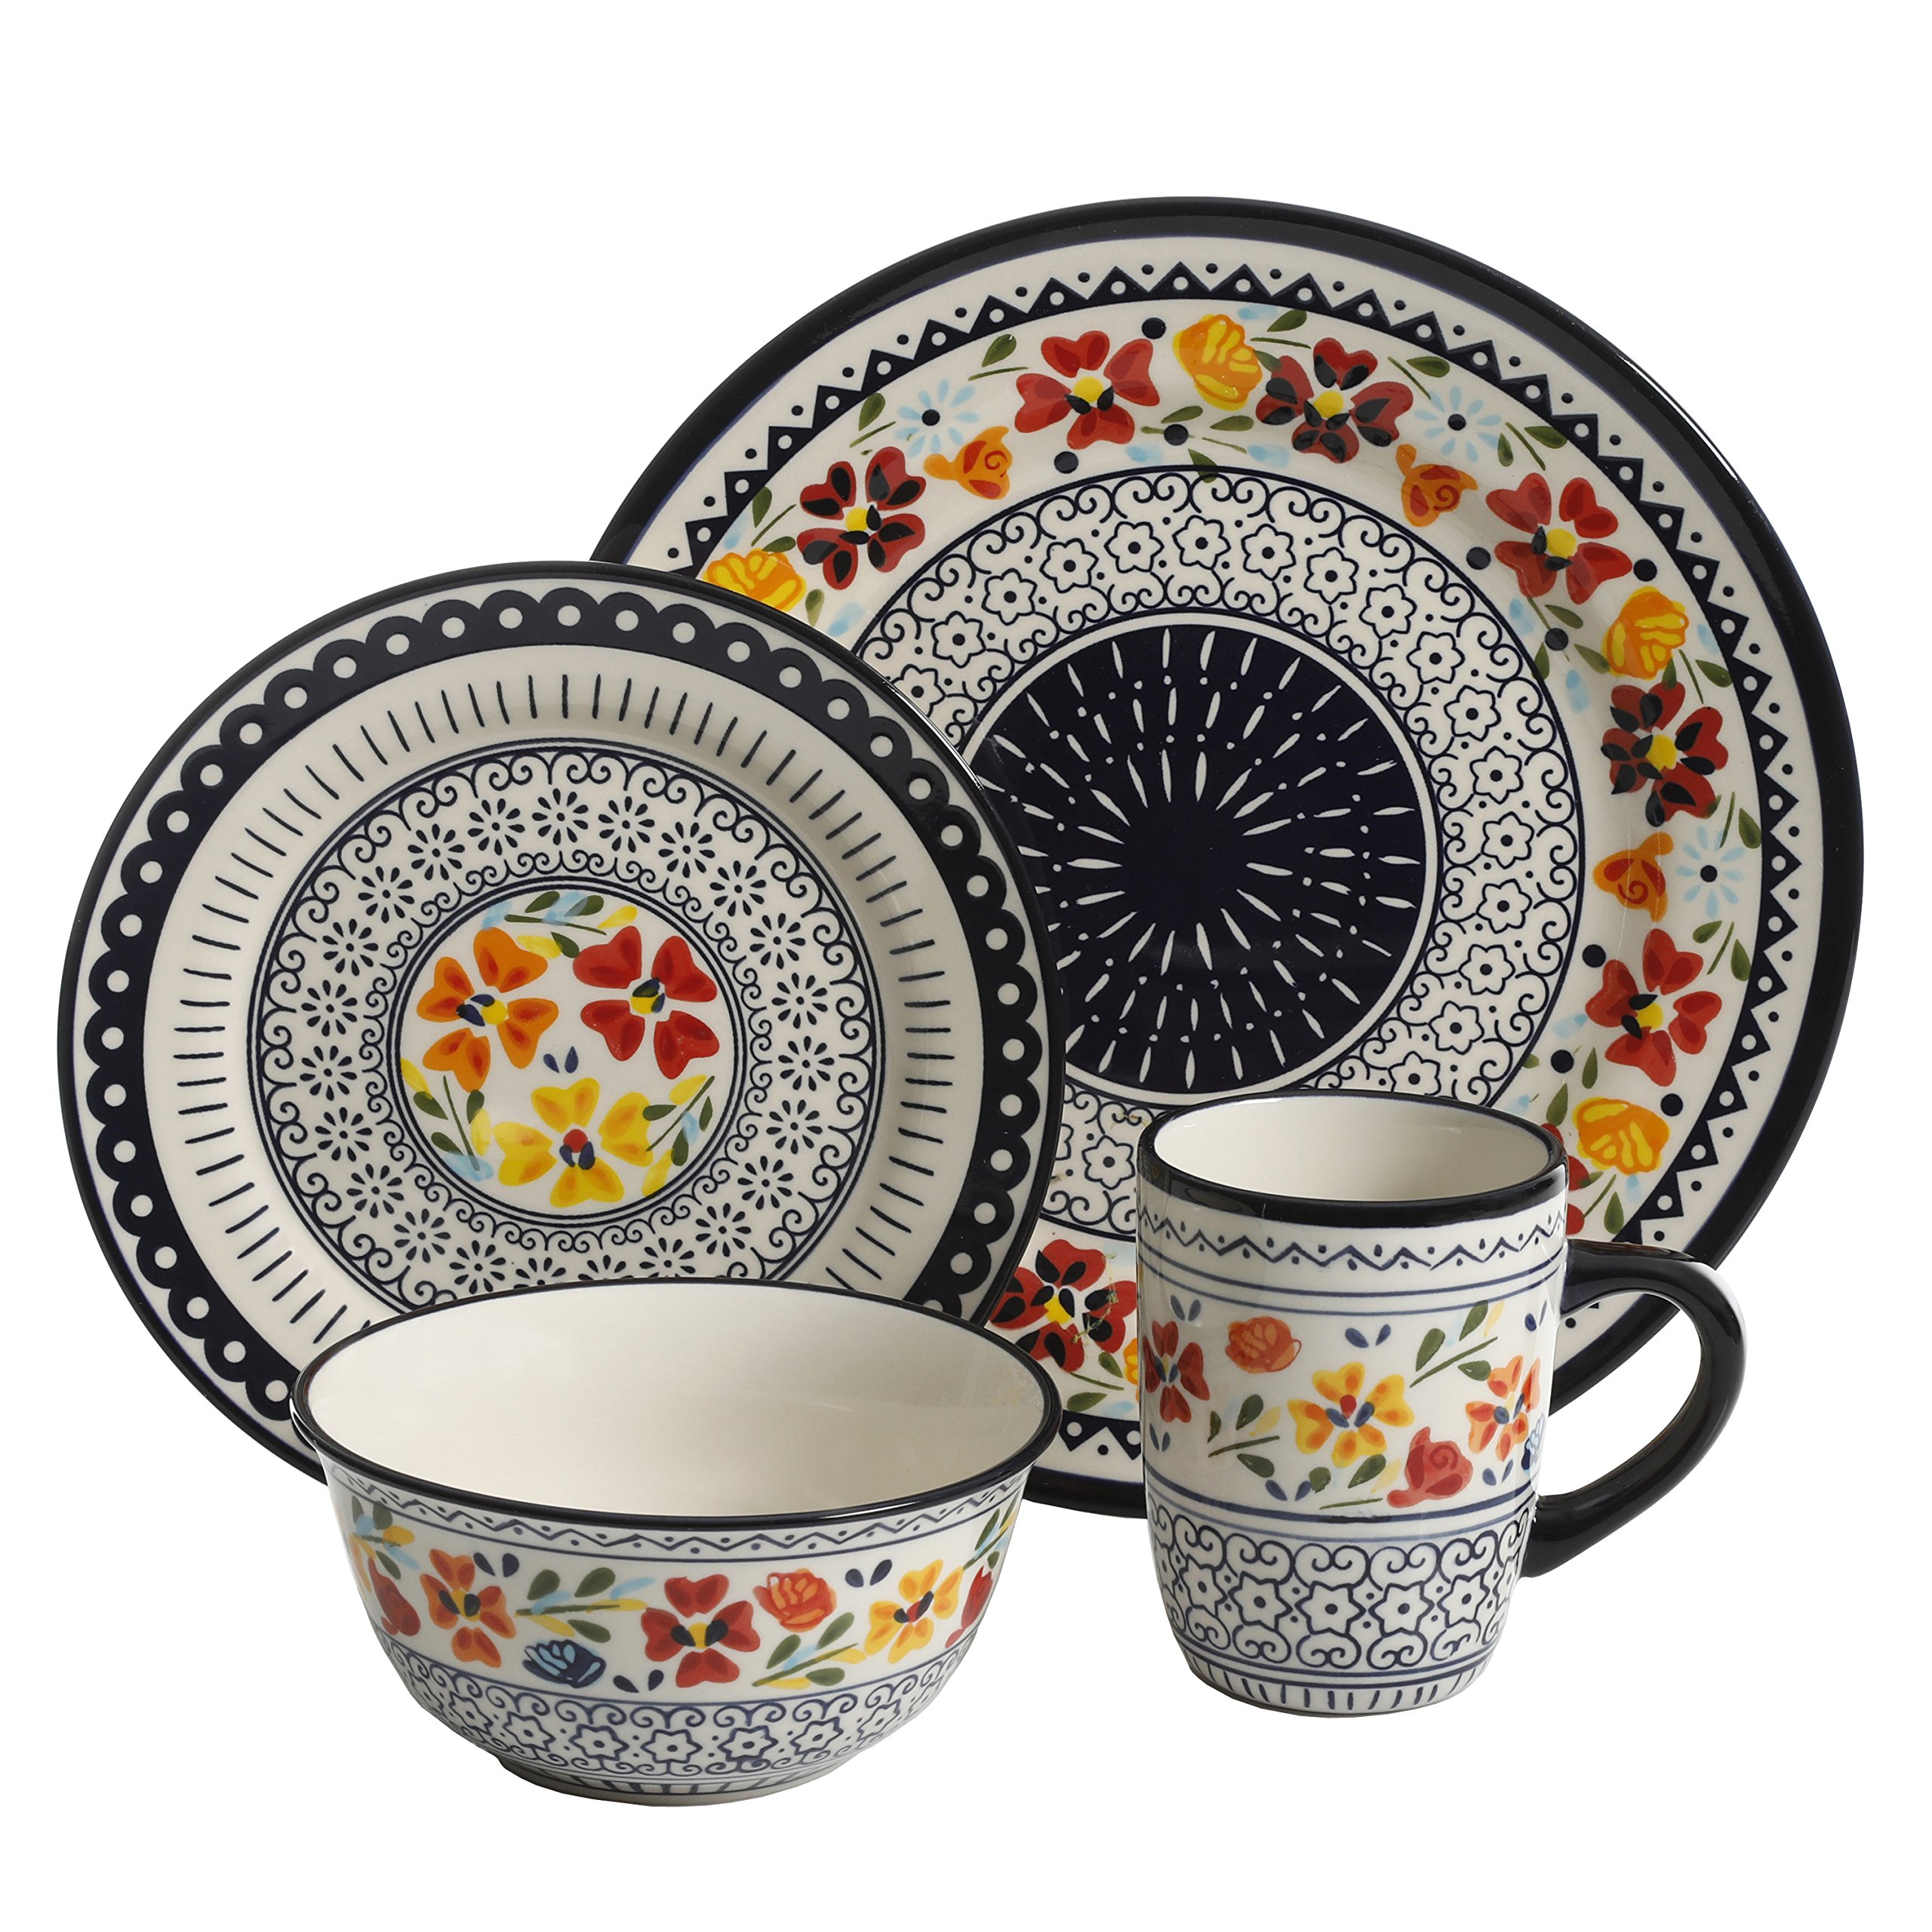 Gibson Elite 92995.16R Luxembourg Handpainted 16 Piece Dinnerware Set, Blue and Cream w/Floral Designs by Gibson